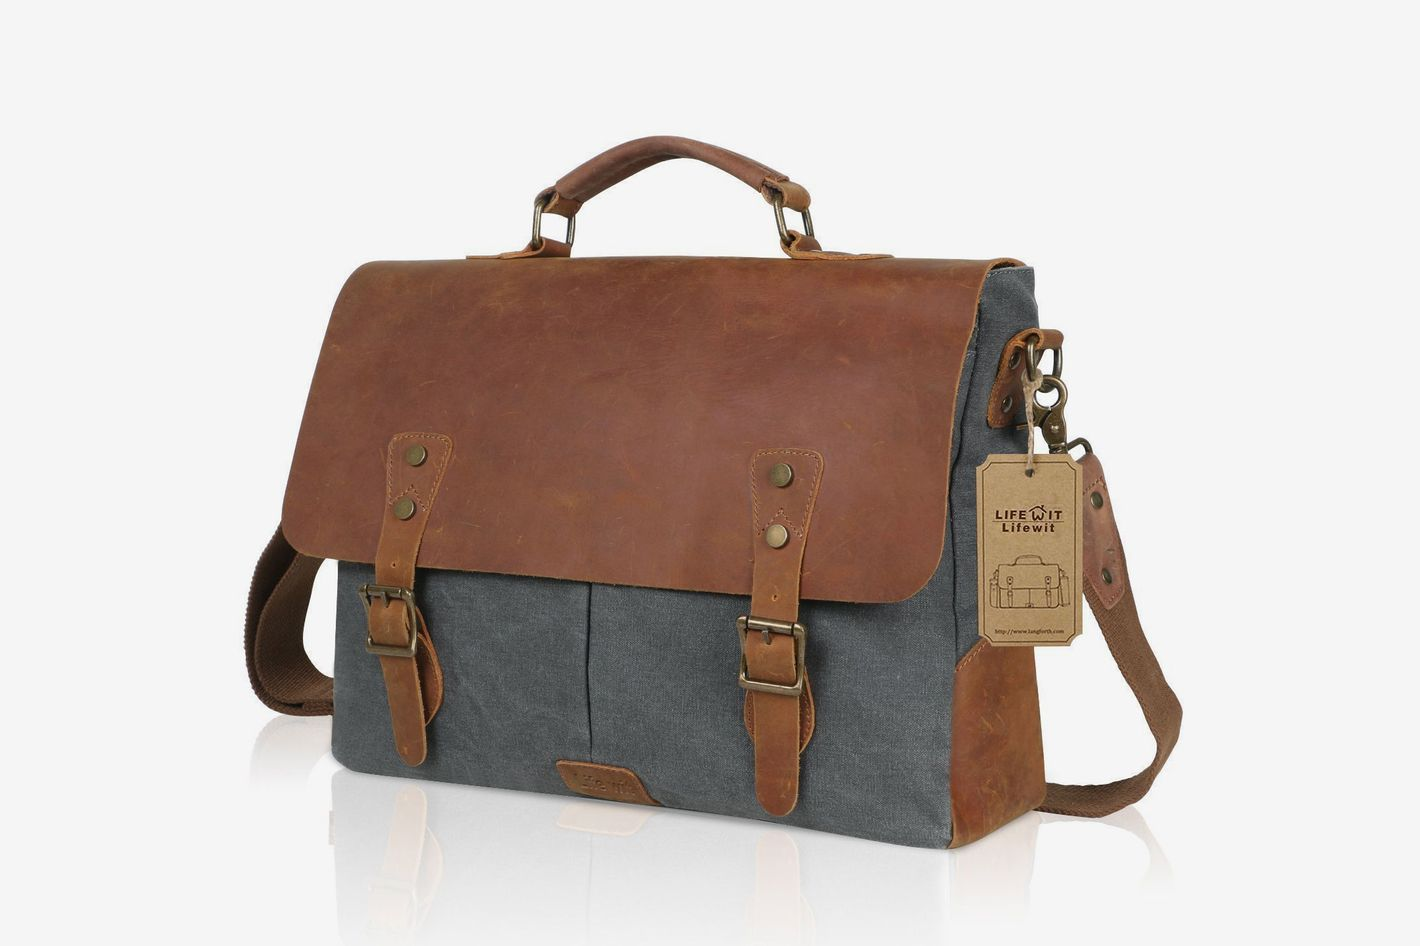 11 Best Messenger Bags for Men 2018 5e1cf8e2f9a15